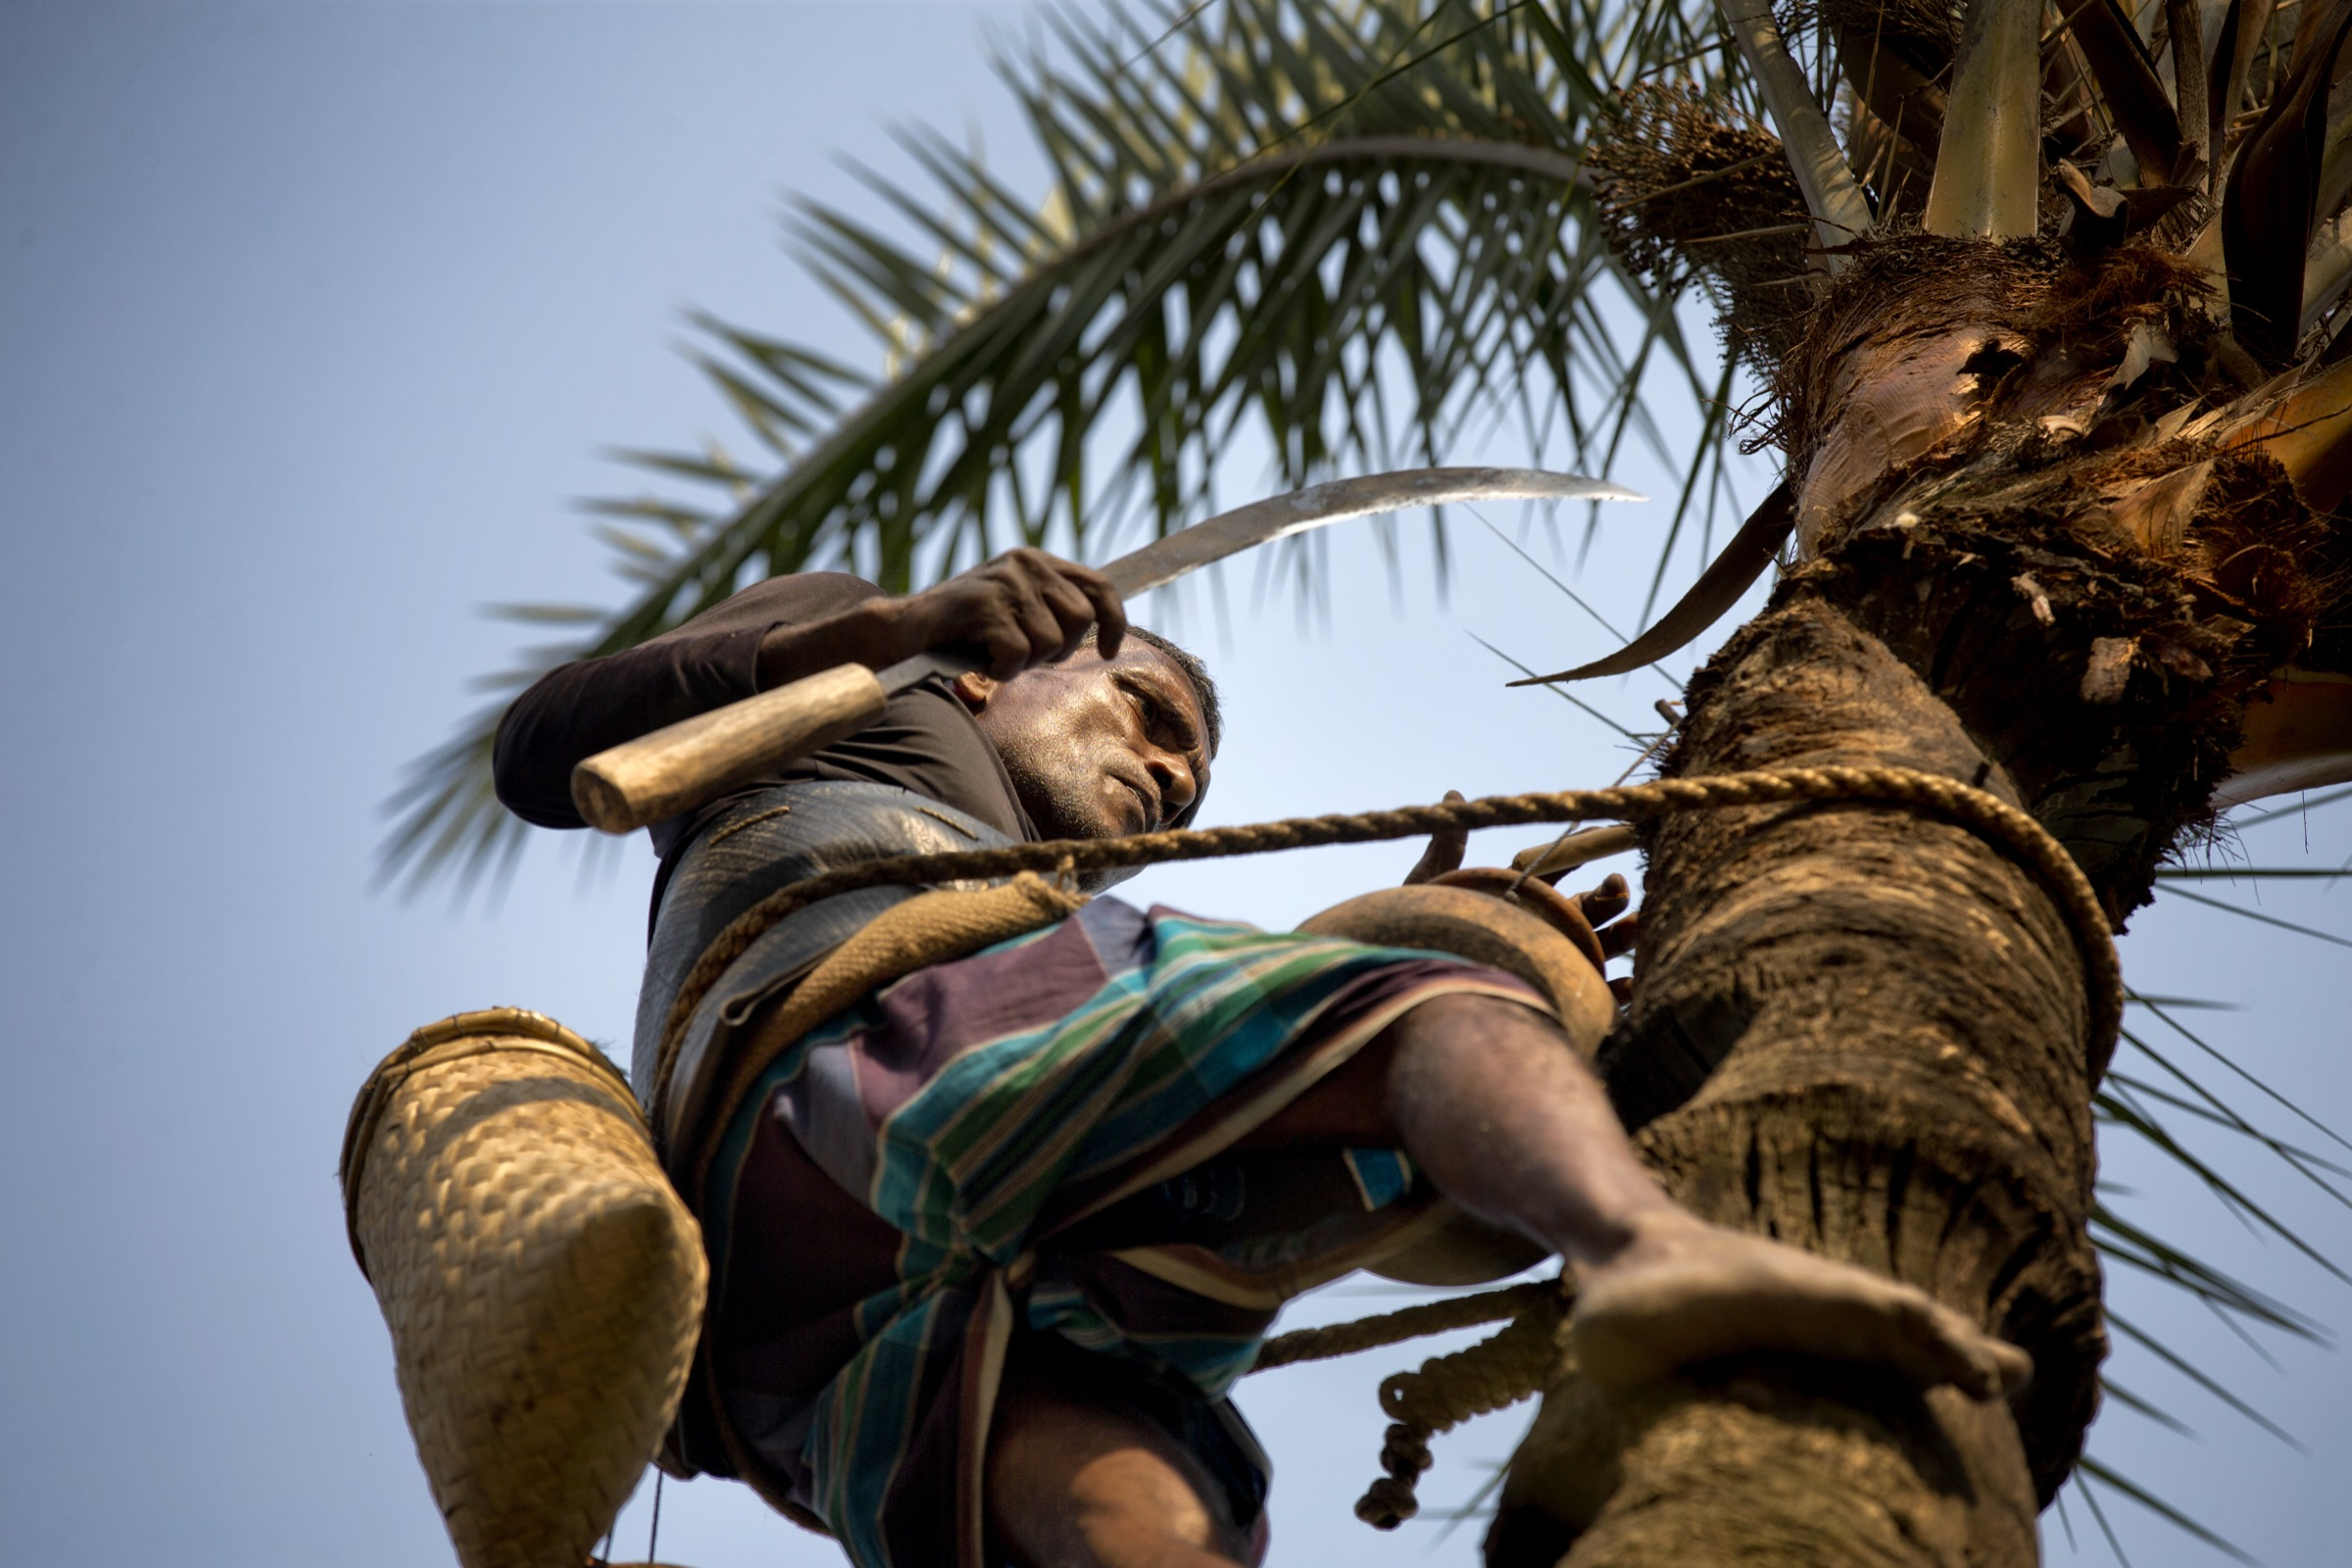 Each day during the winter, Bangladesh's <em>gachhis</em> climb date palm trees, carve away a layer of bark and collect the thin, sweet sap that oozes form the tree. Photograph by A.M. Ahad